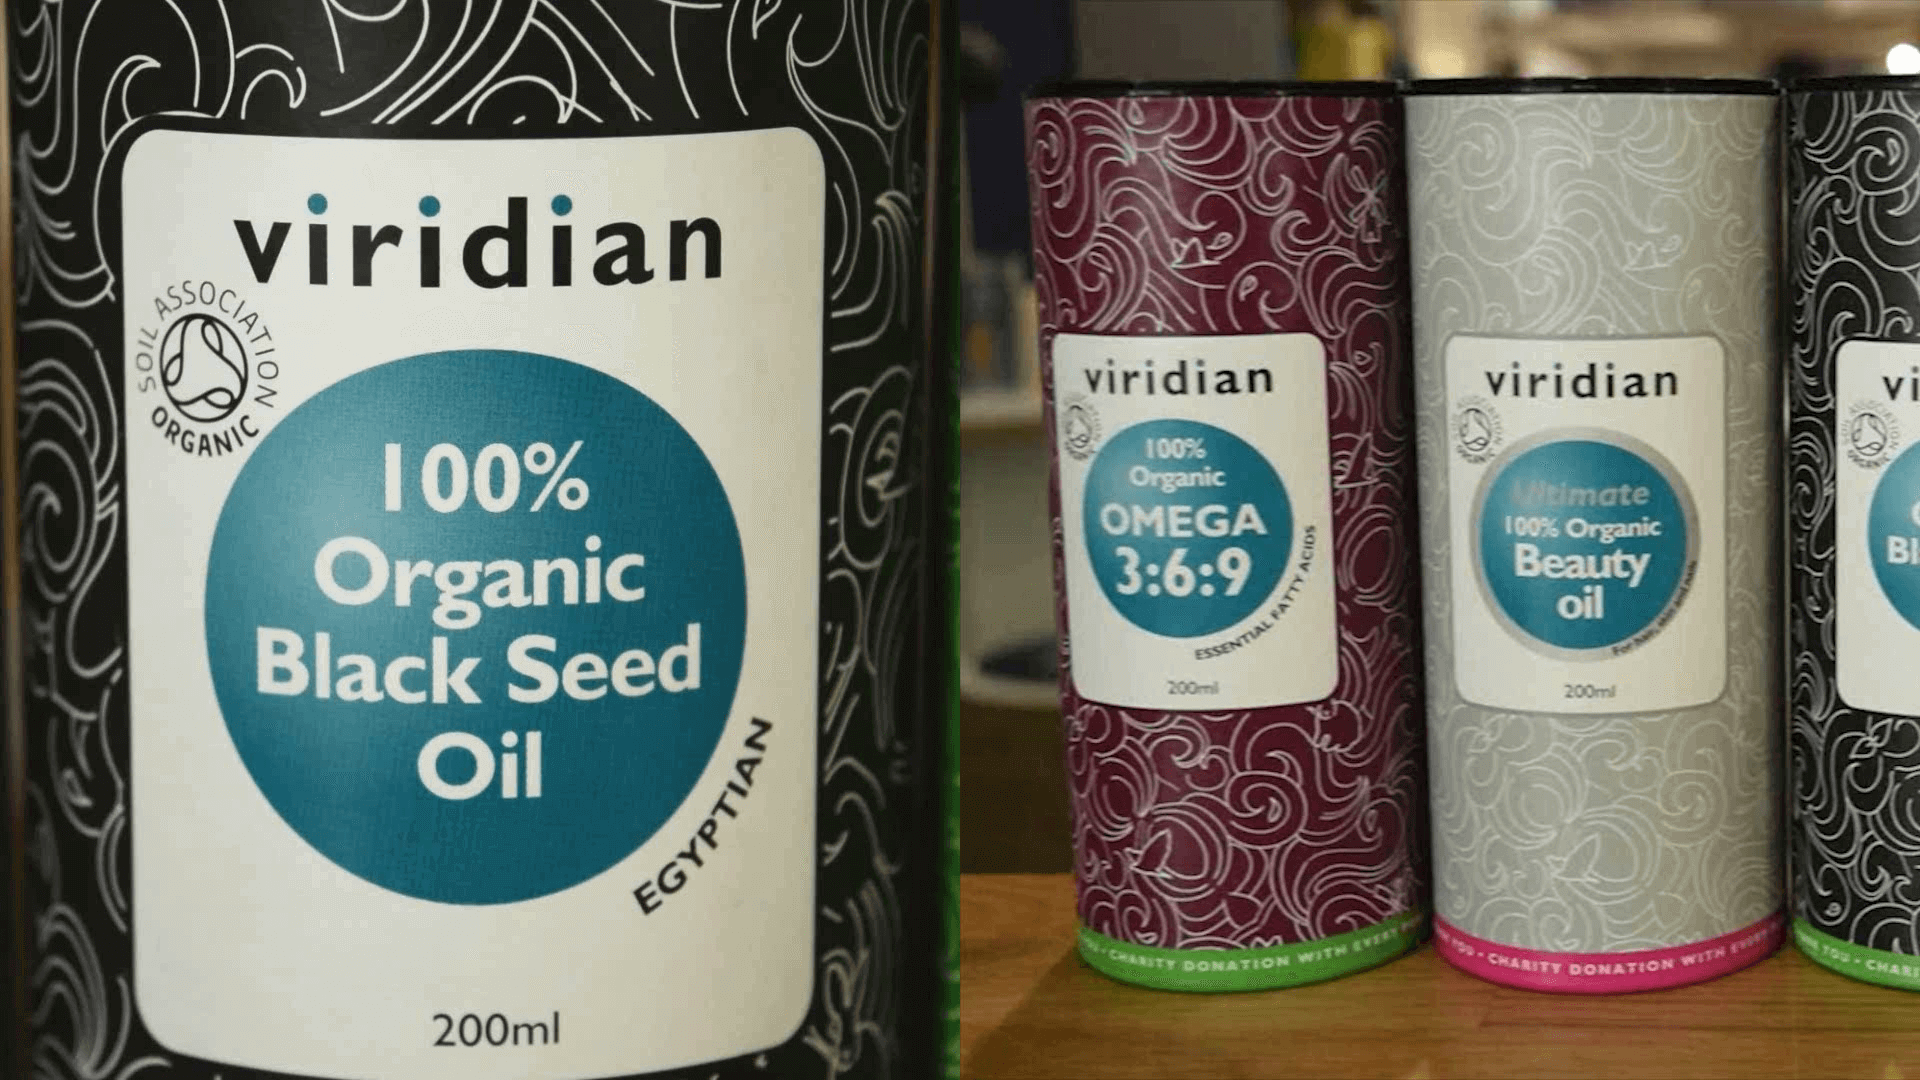 How to Use Black Seed Oil by Viridian Nutrition